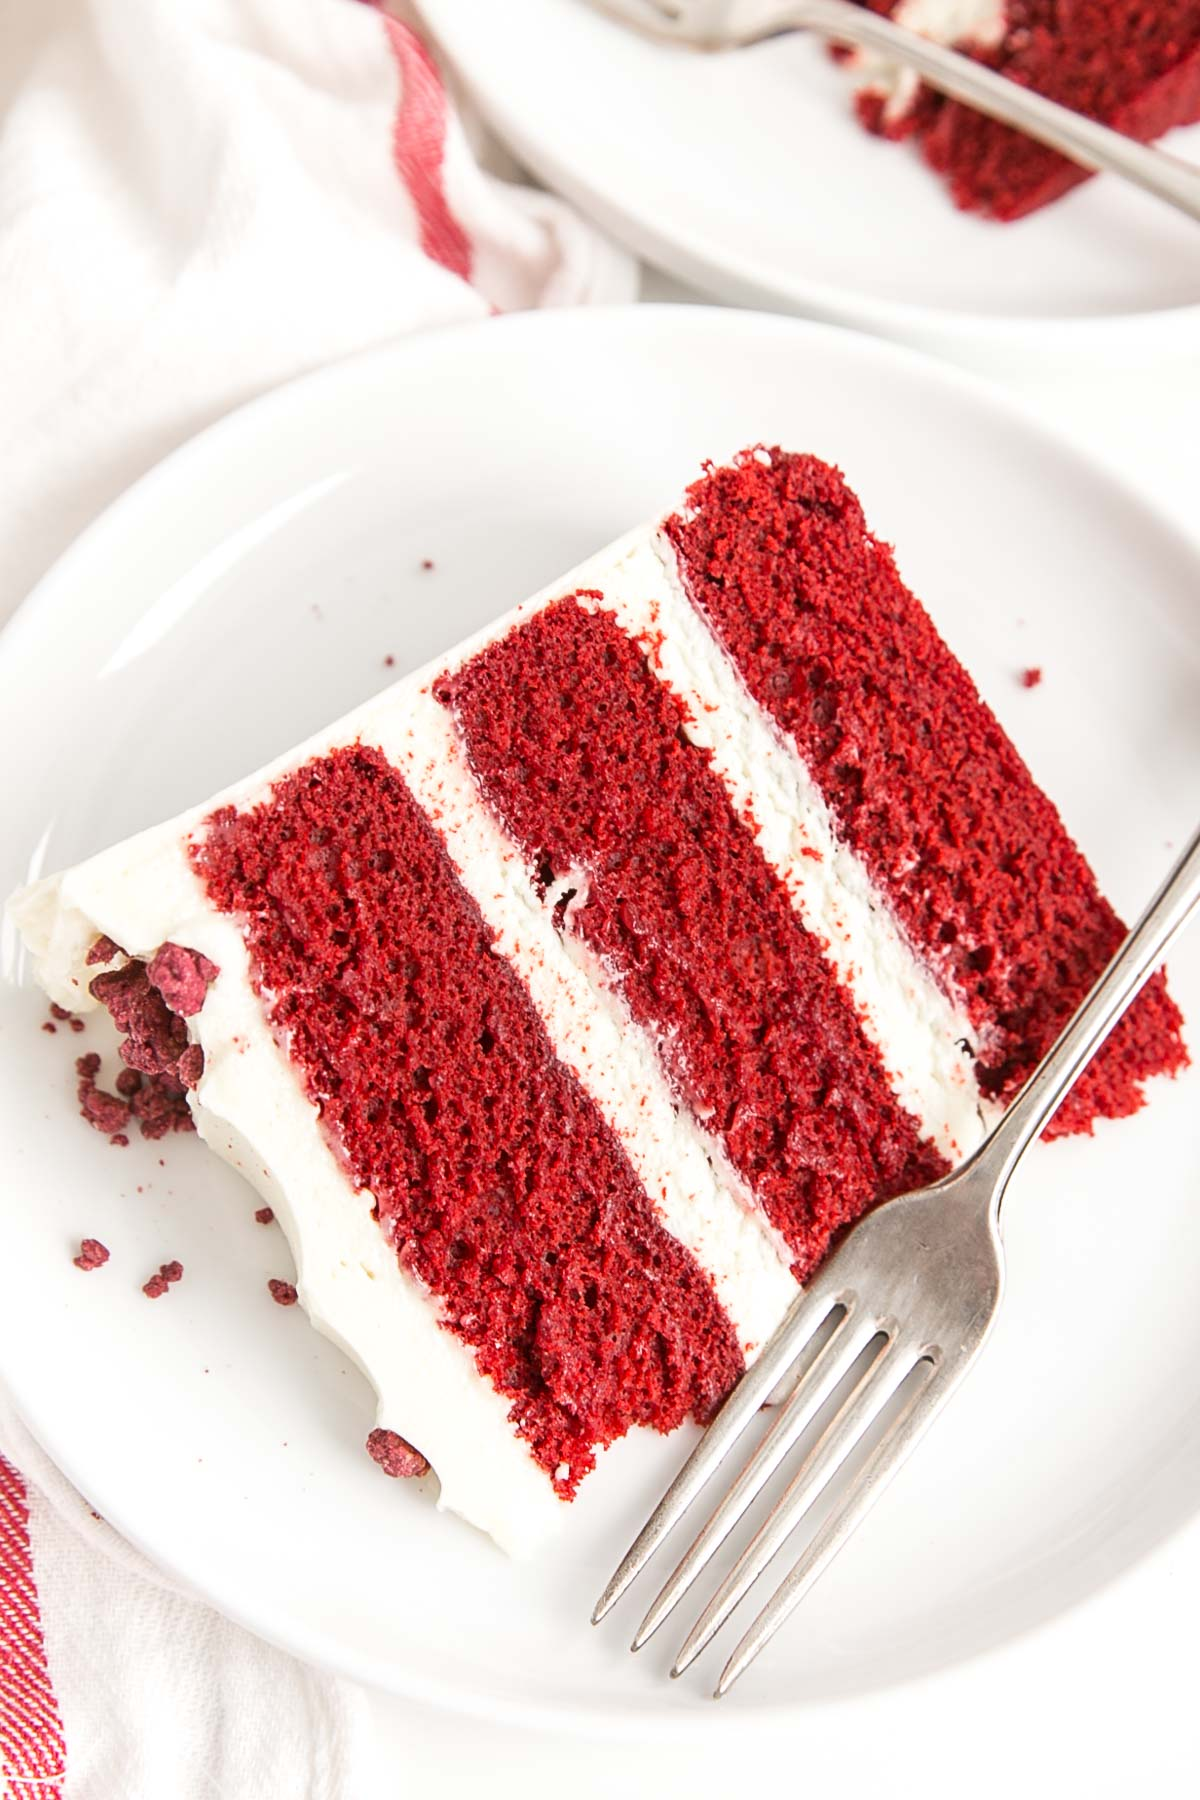 Slice of red velvet cake on a plate.